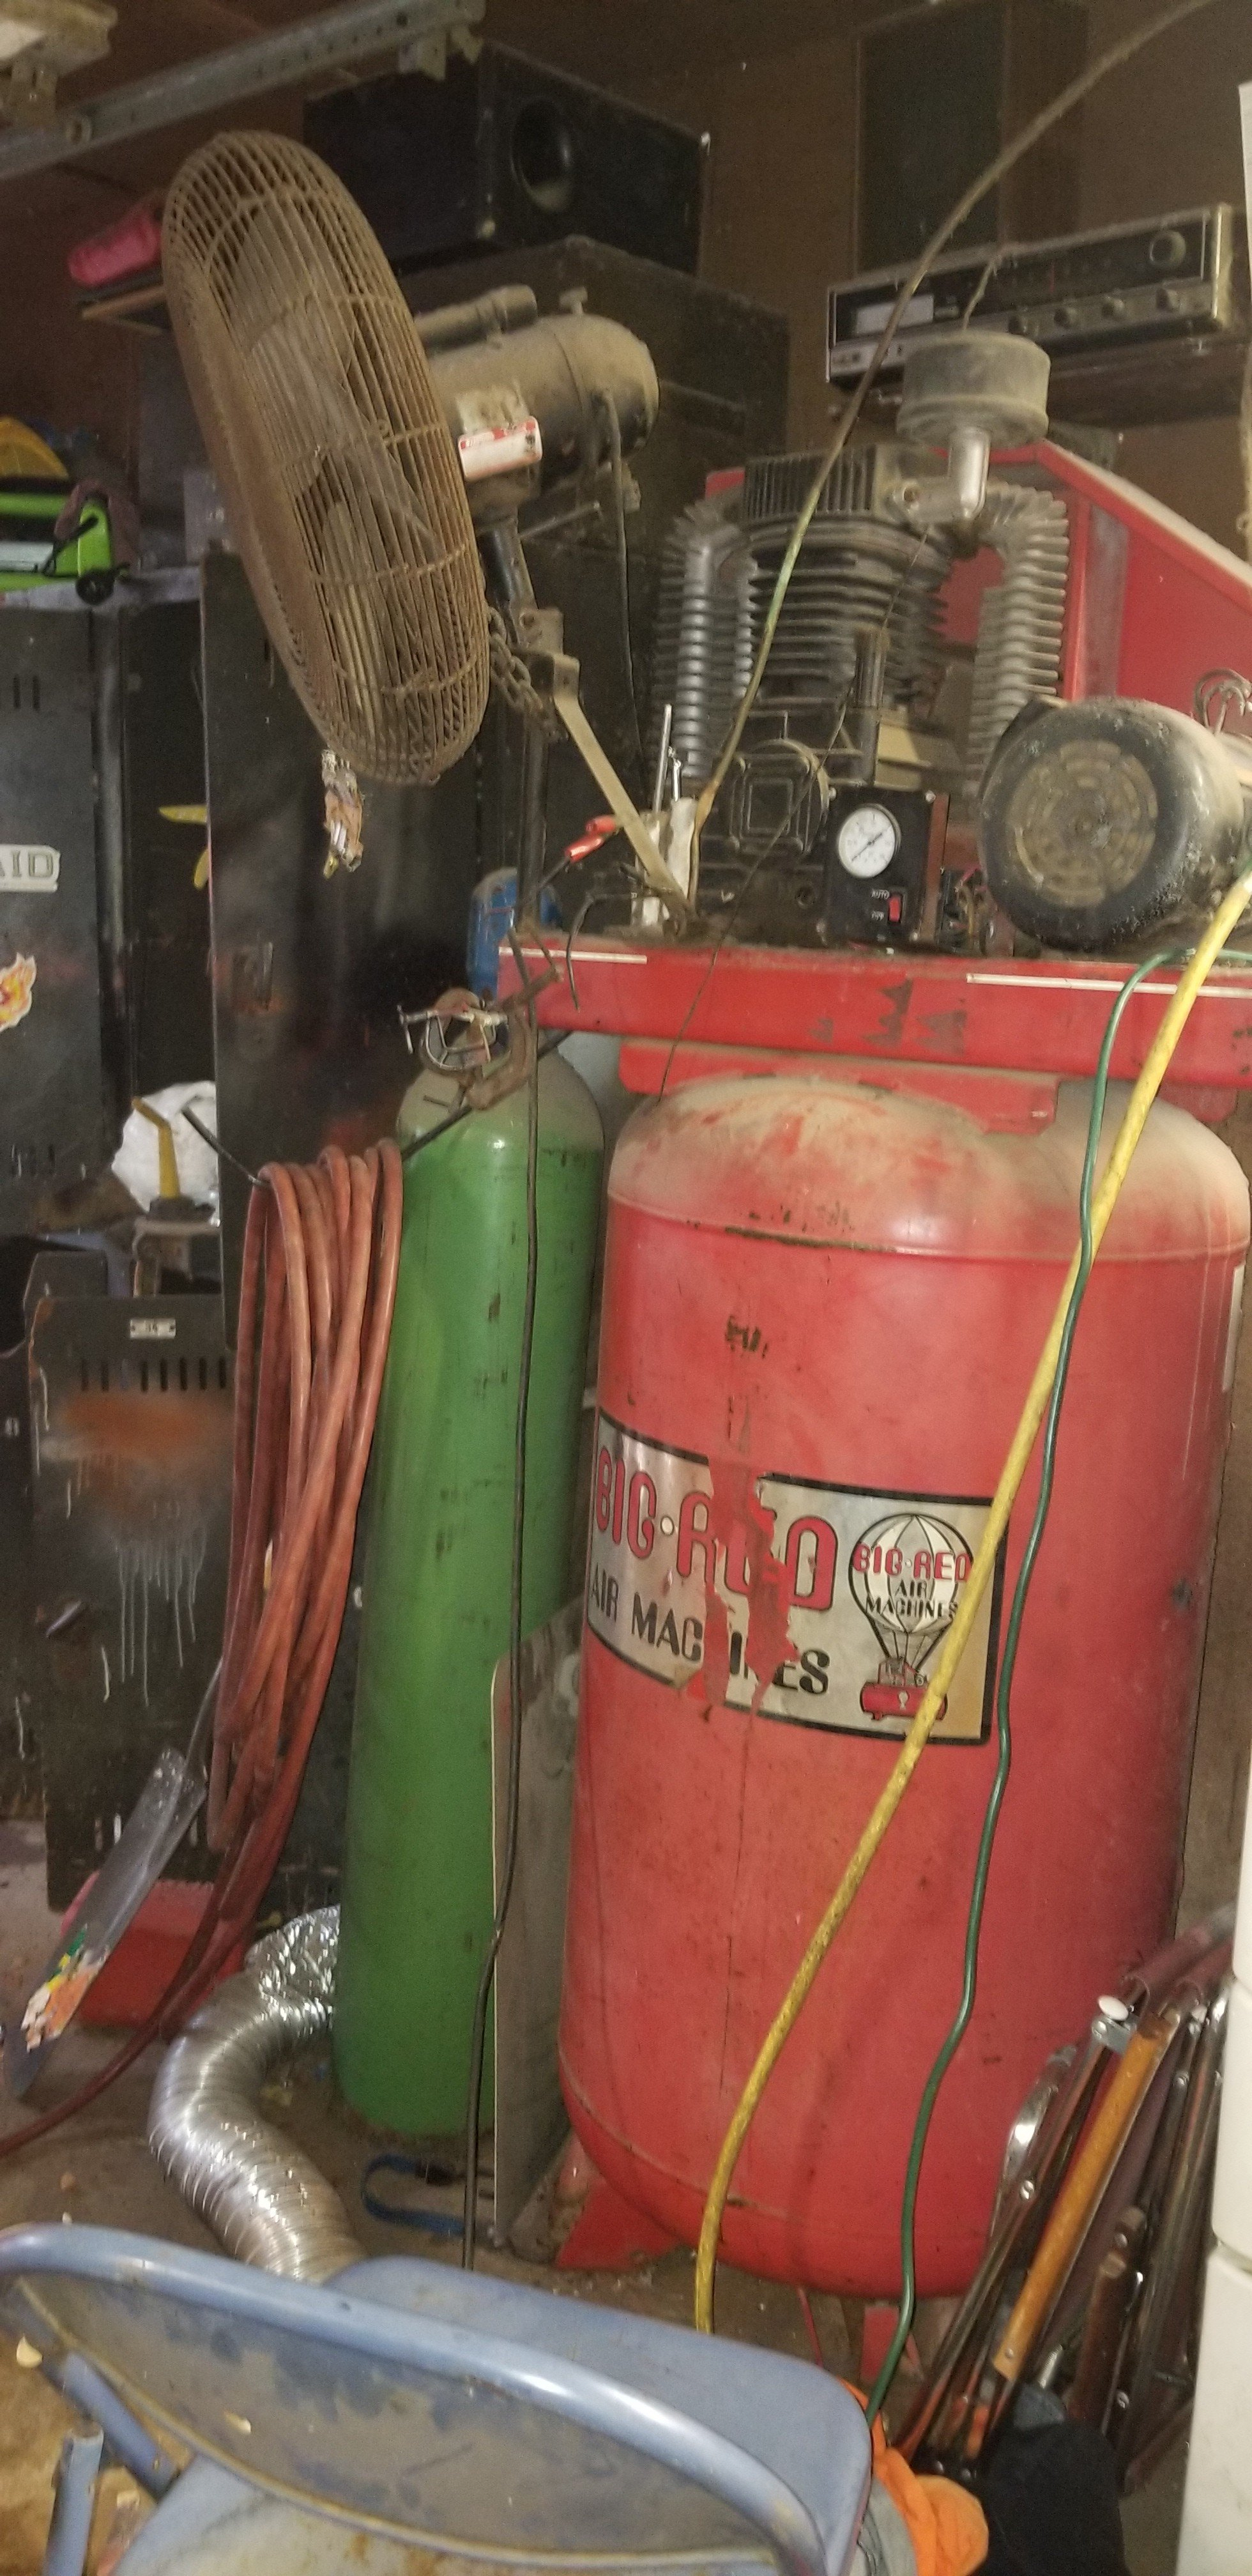 sanborn air compressor centrifugal switch with wiring diagram air compressor will not start  air compressor will not start